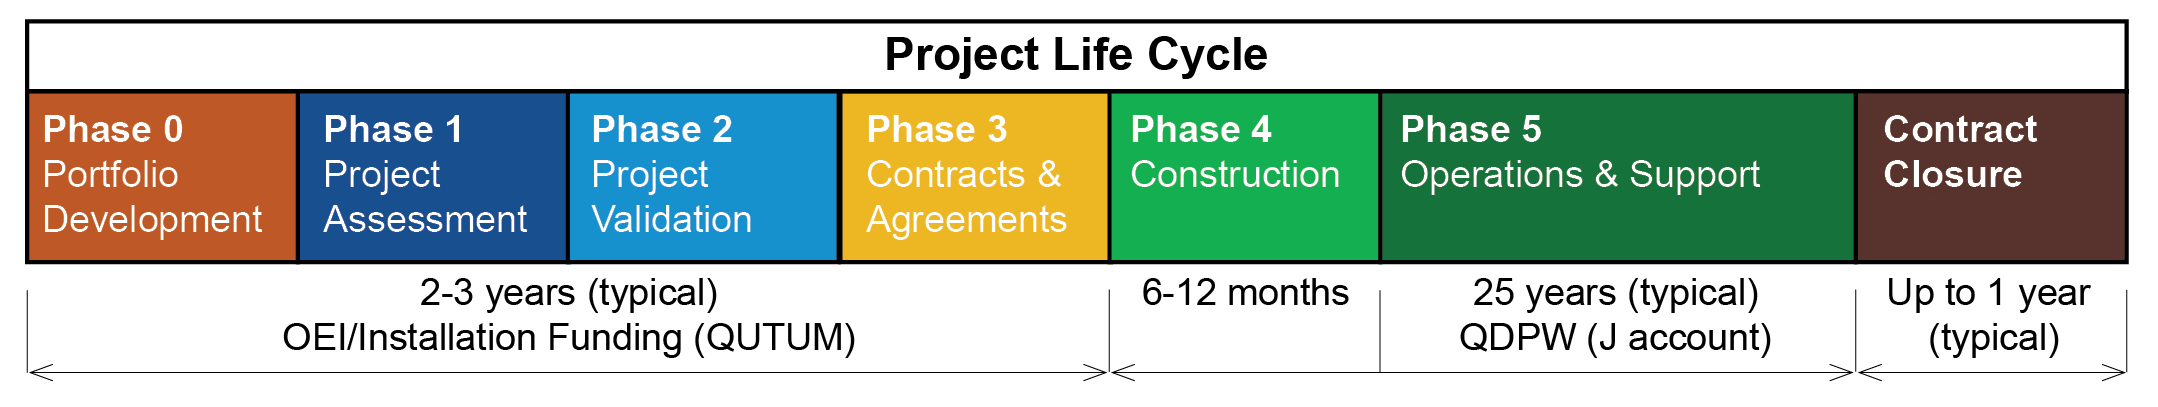 Energy division power purchase agreement program us army image of project life cycle flow nvjuhfo Image collections